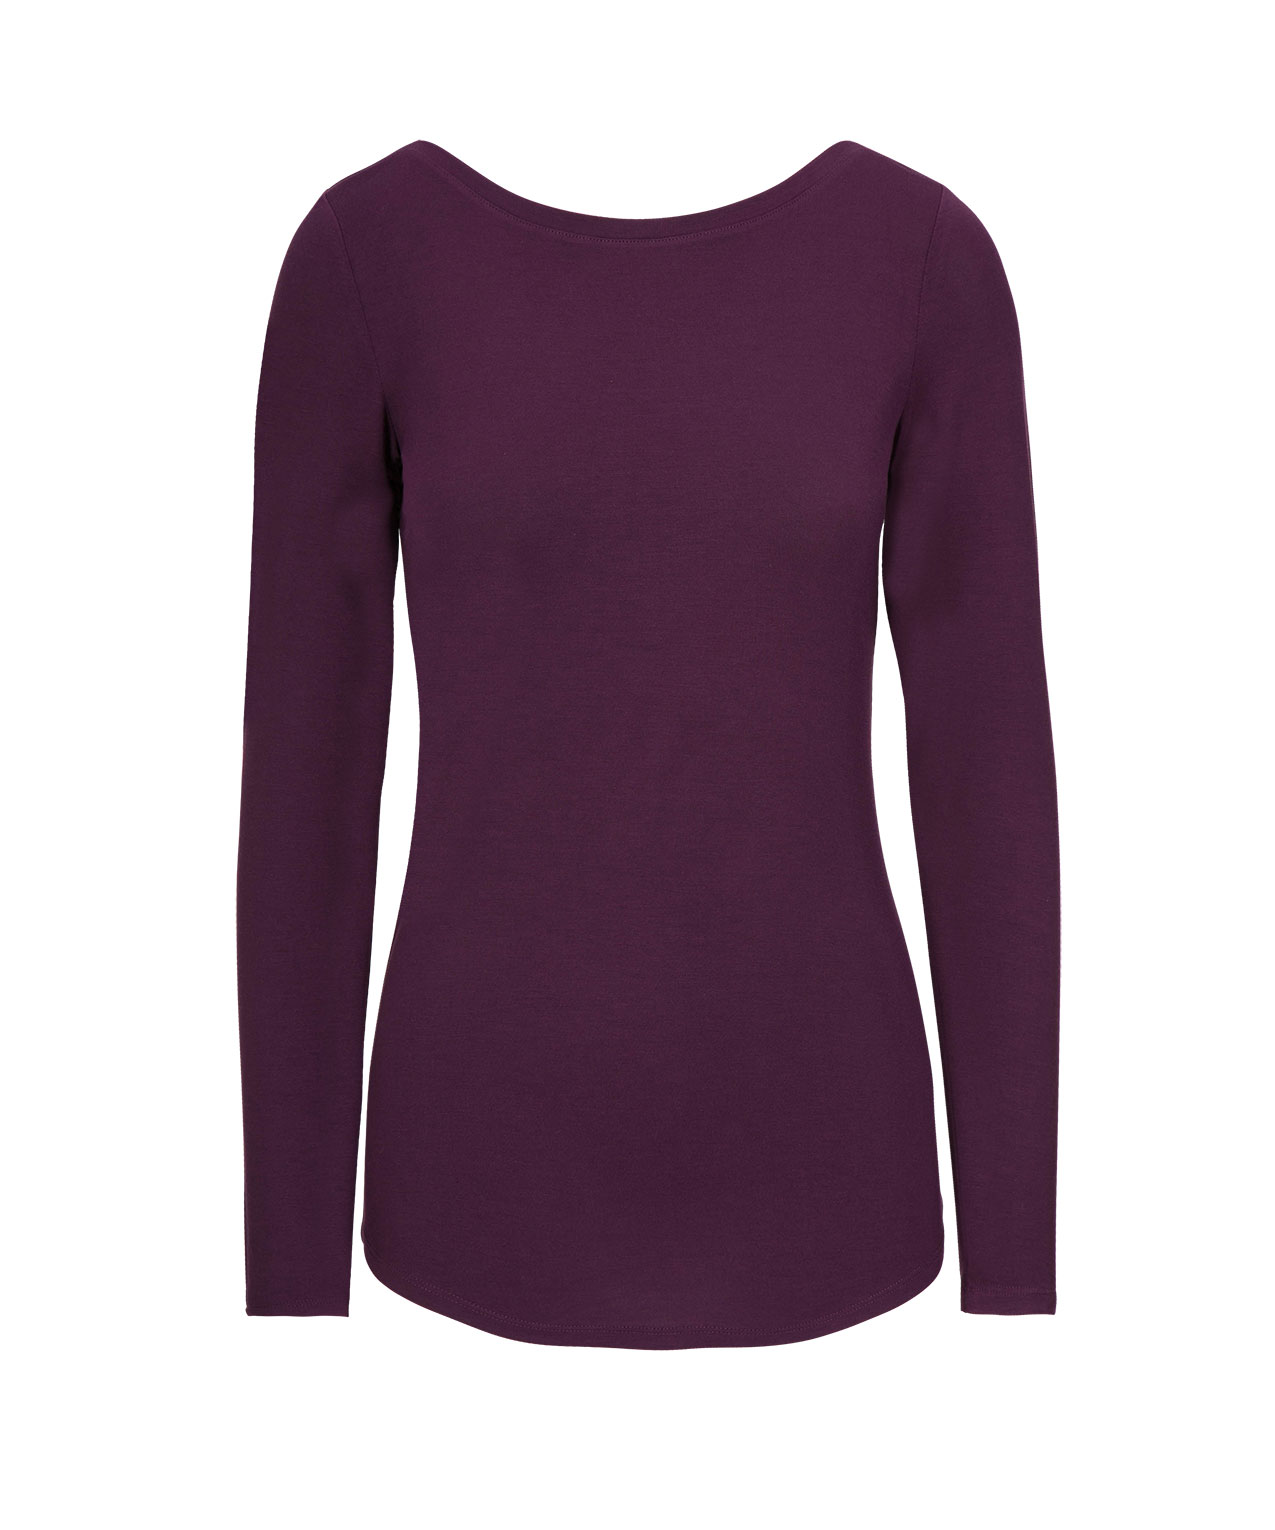 cc507a03a3 Boatneck Layering Essential Top | Amethyst | Rickis